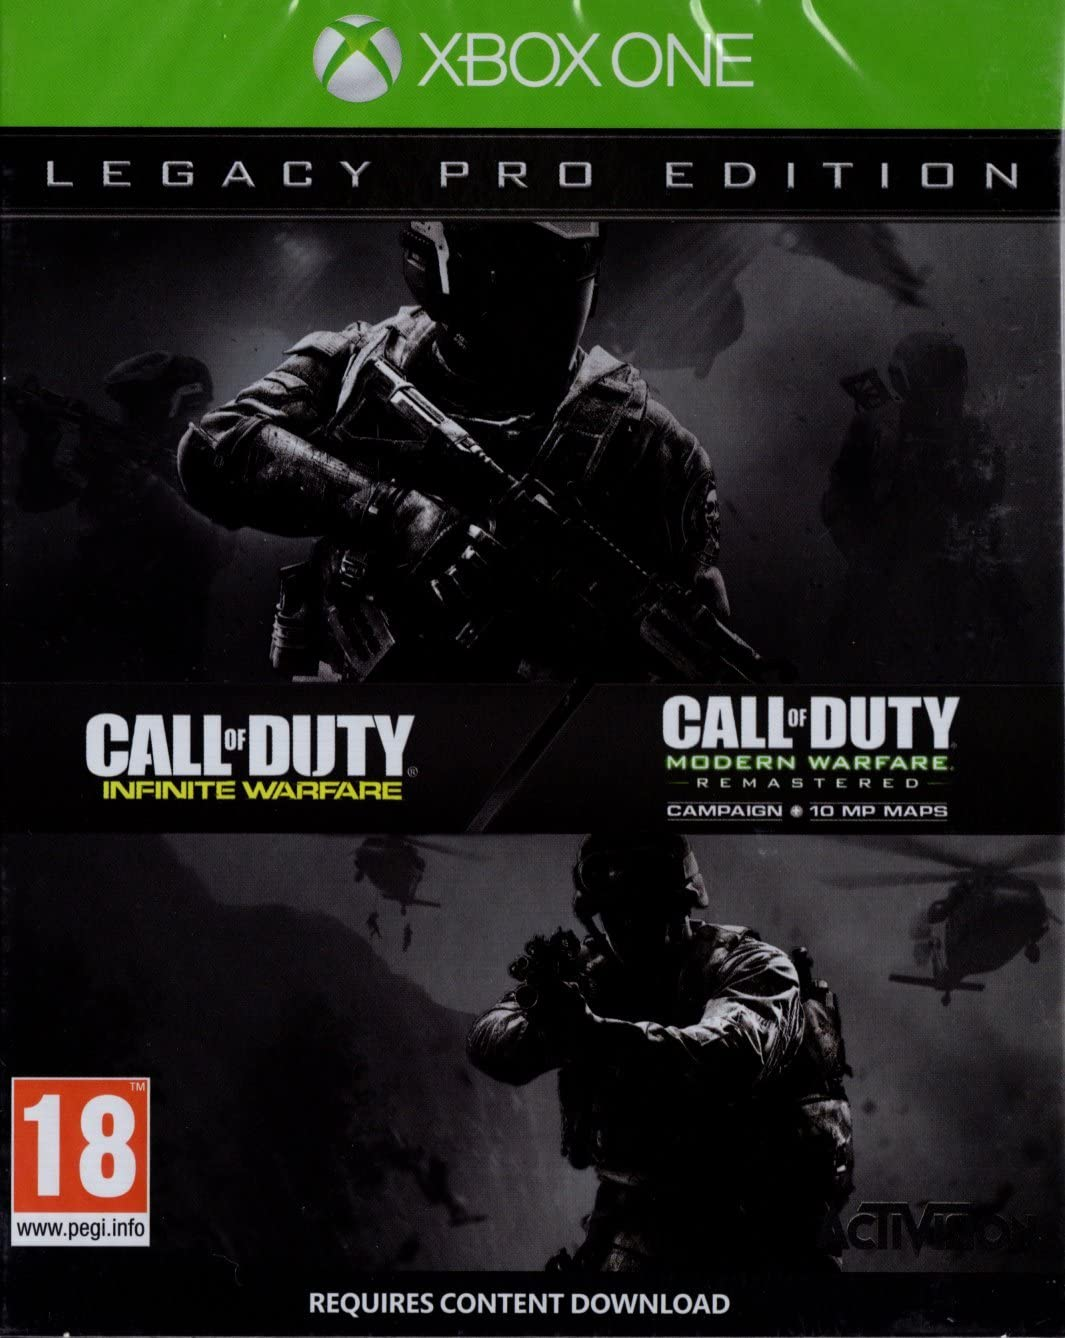 Xbox One Call of Duty: Infinite Warfare Legacy Pro Edition incl ...